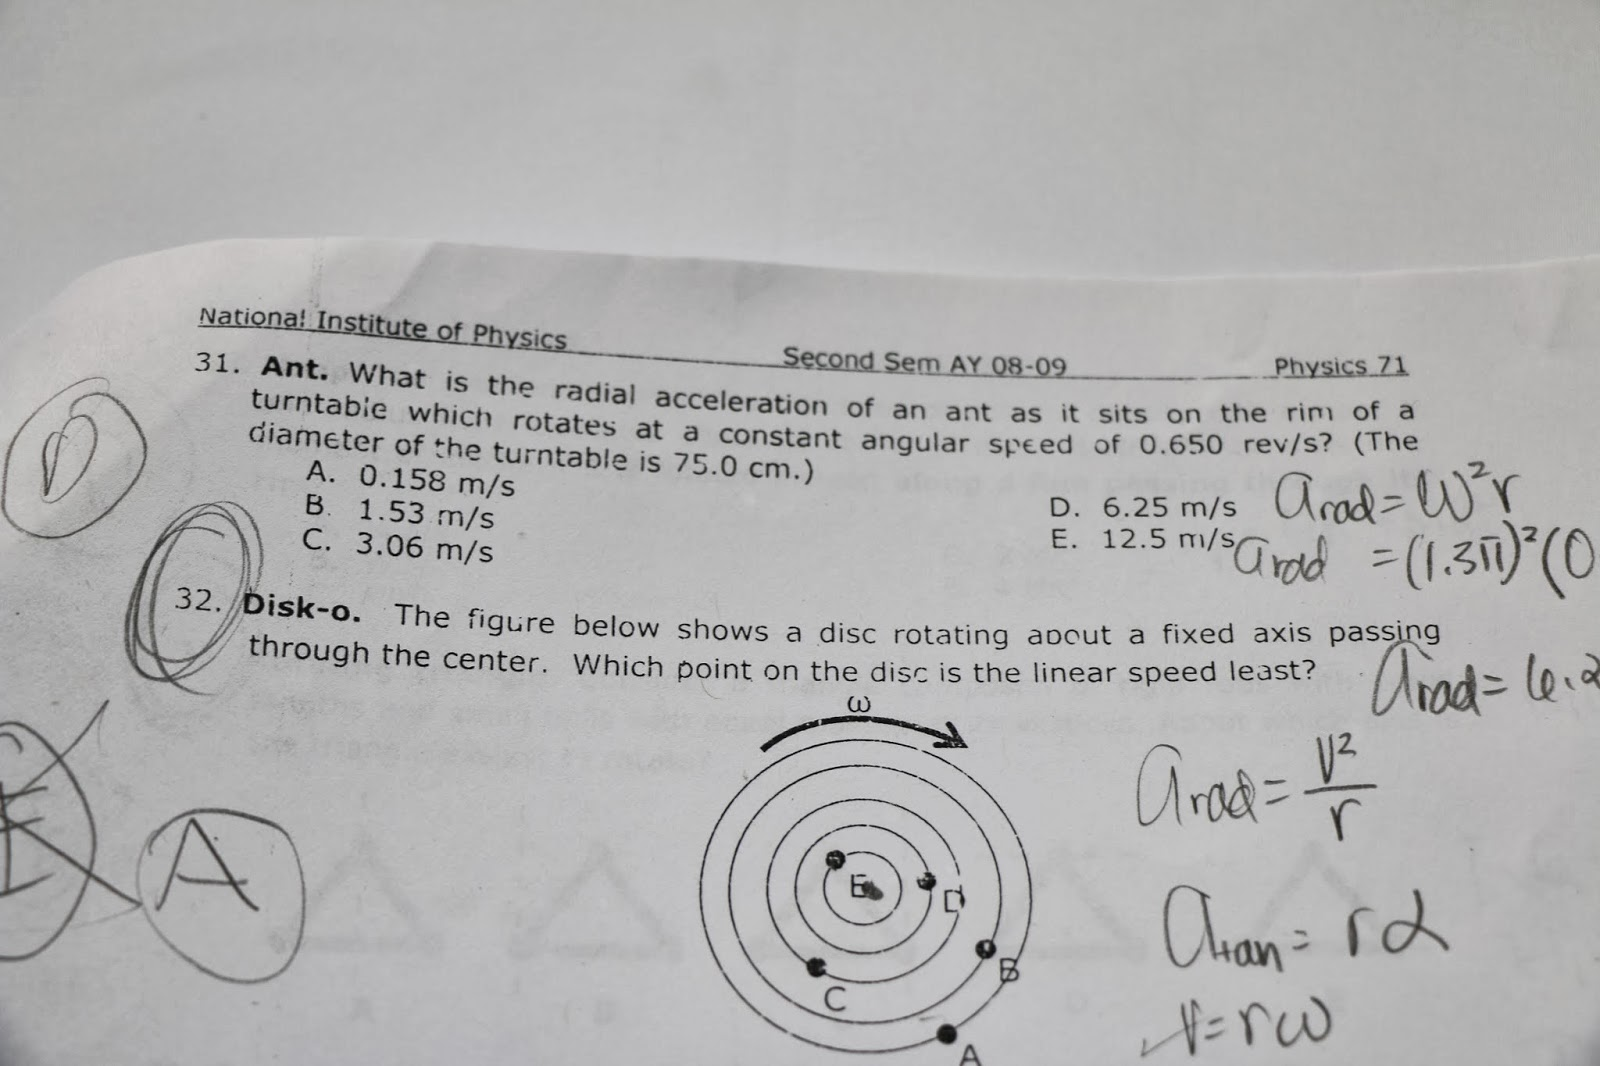 UPD Samplexes, Readings, and Materials: UPD Physics 71